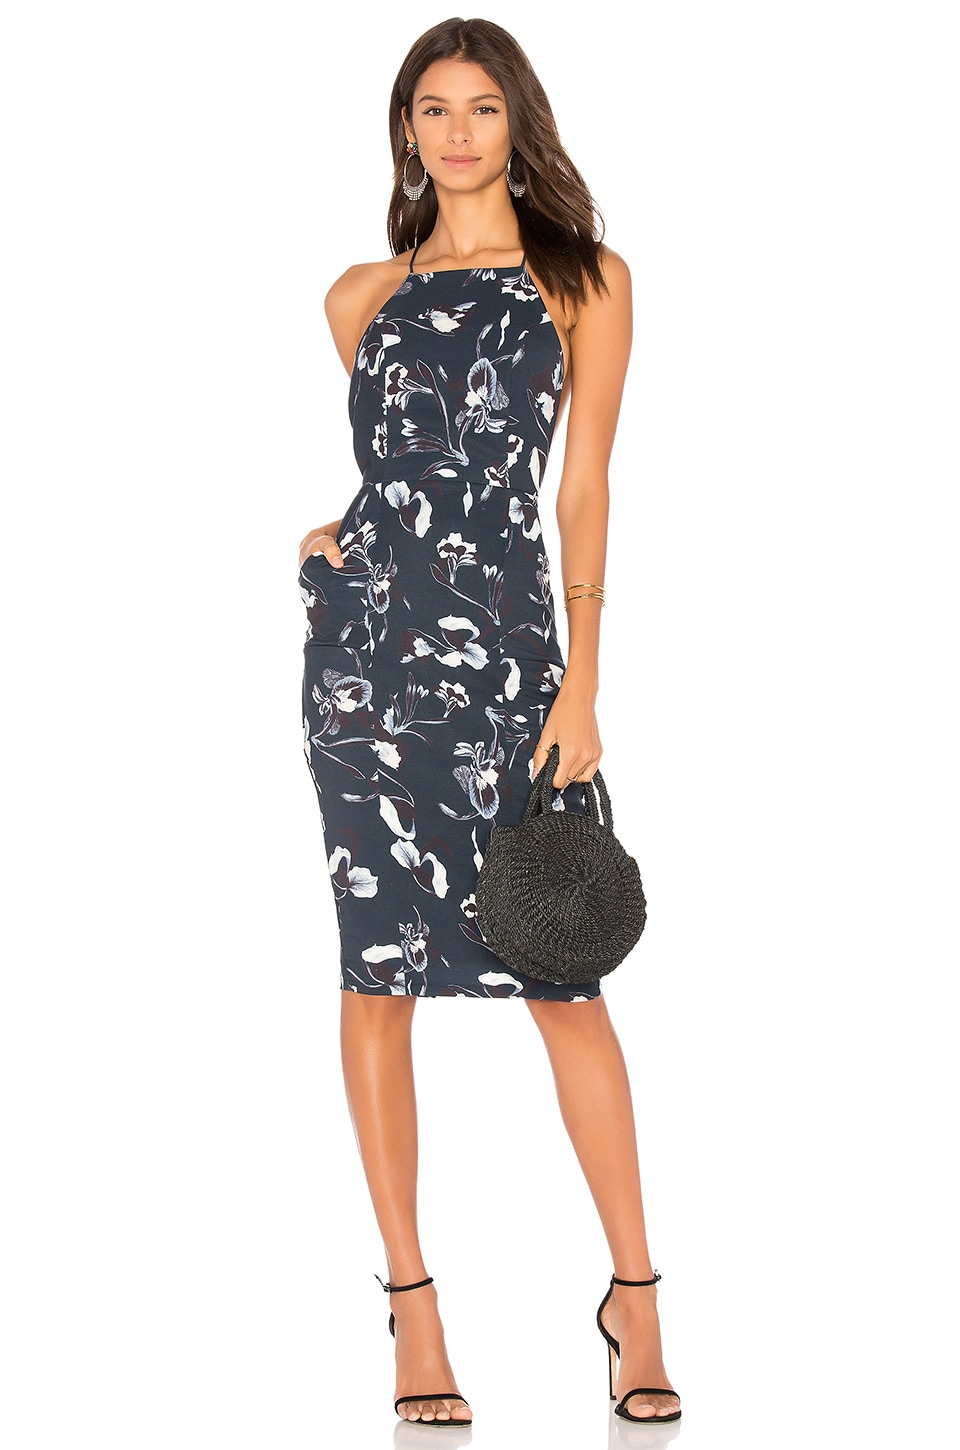 AIRLIE Isolla Dress in Navy Print